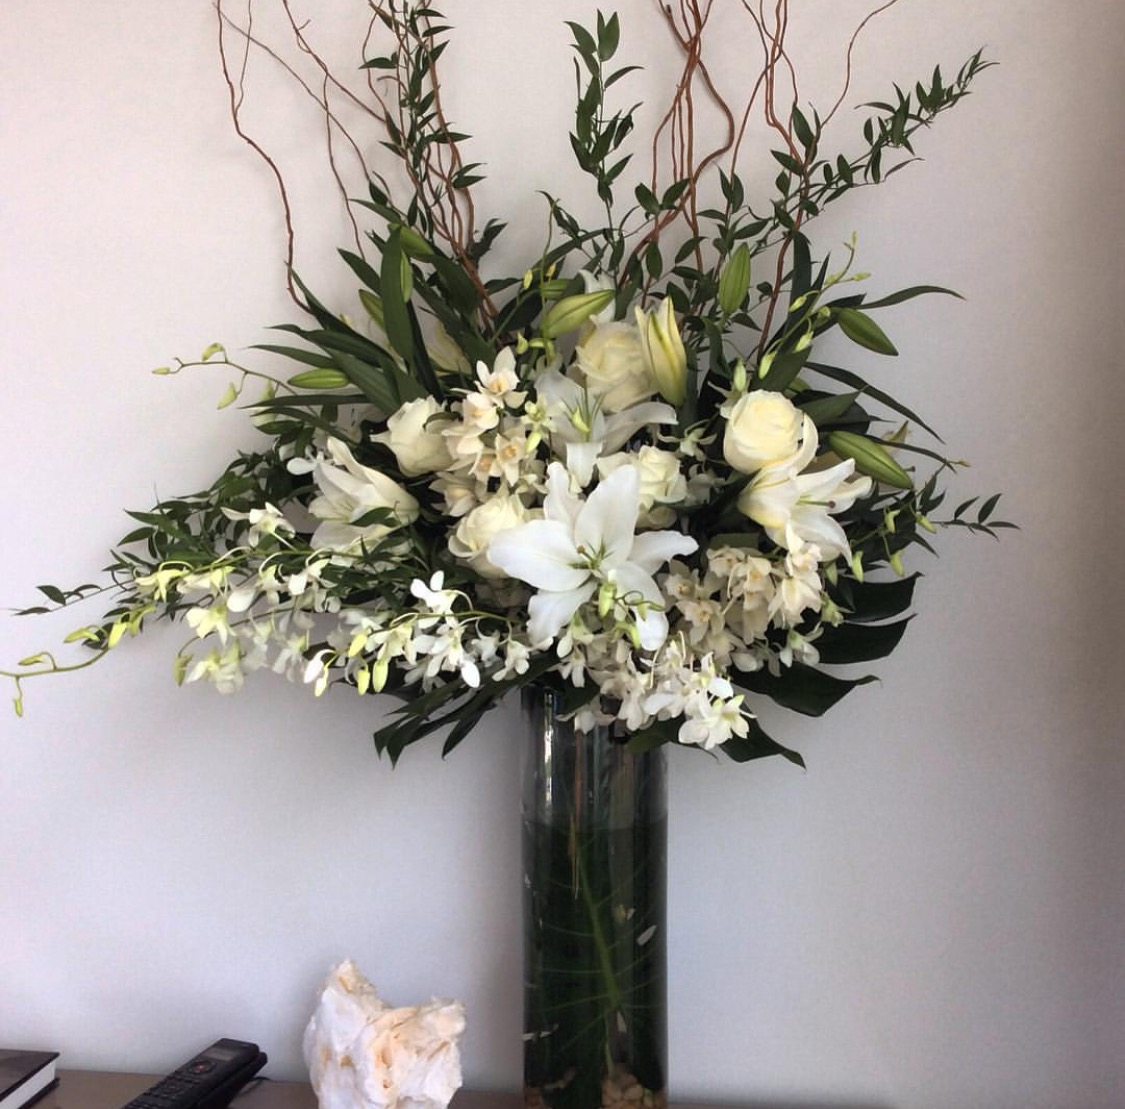 30. Tall Modern Casa Blanca Arrangement